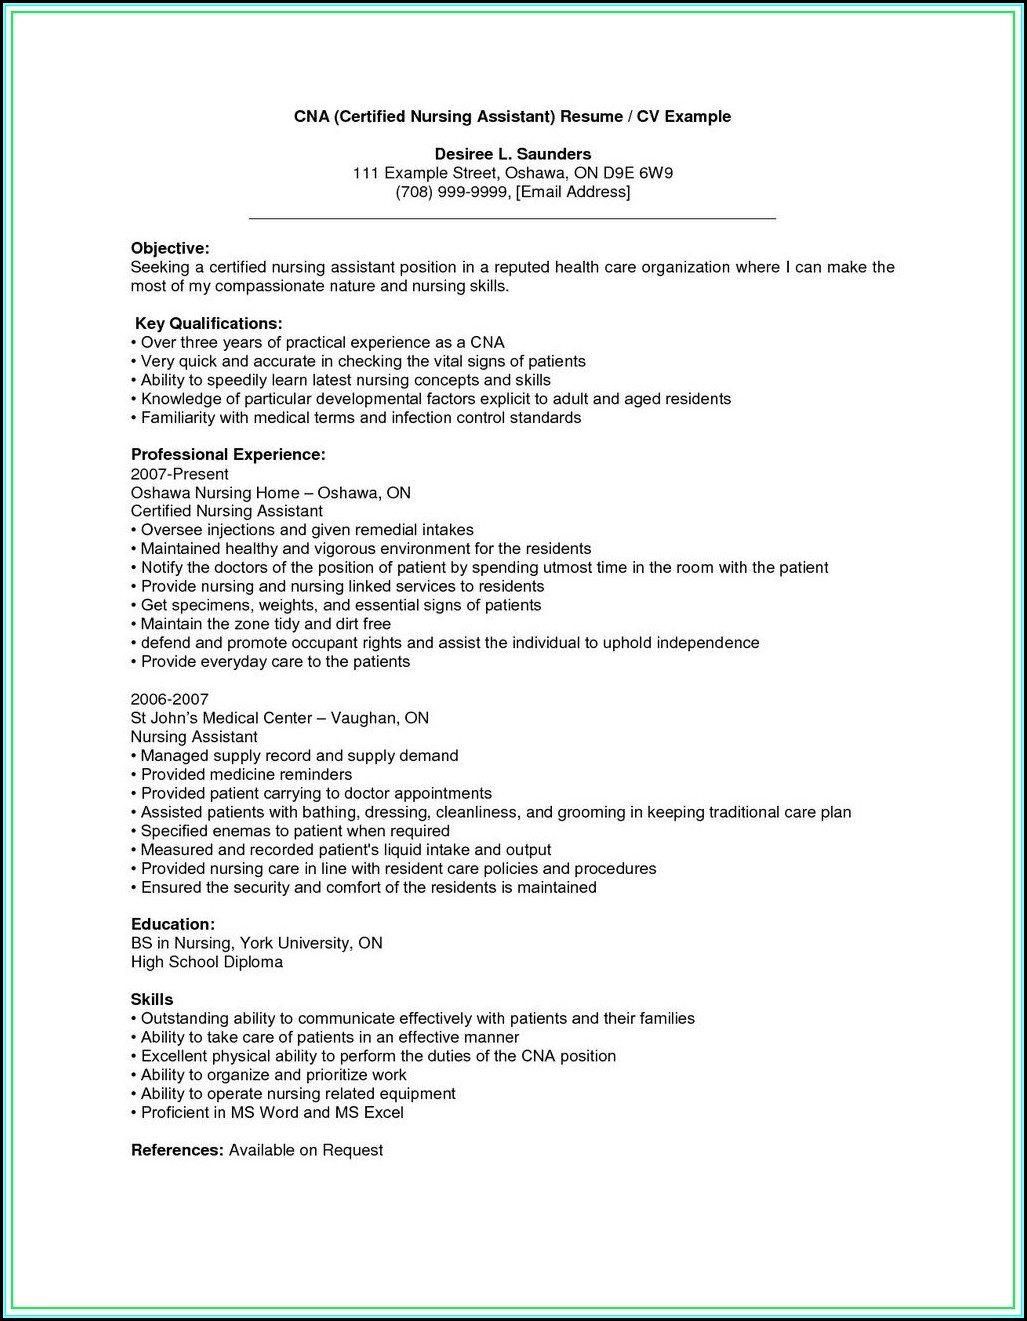 Sample Resume For Nursing Assistant With No Experience